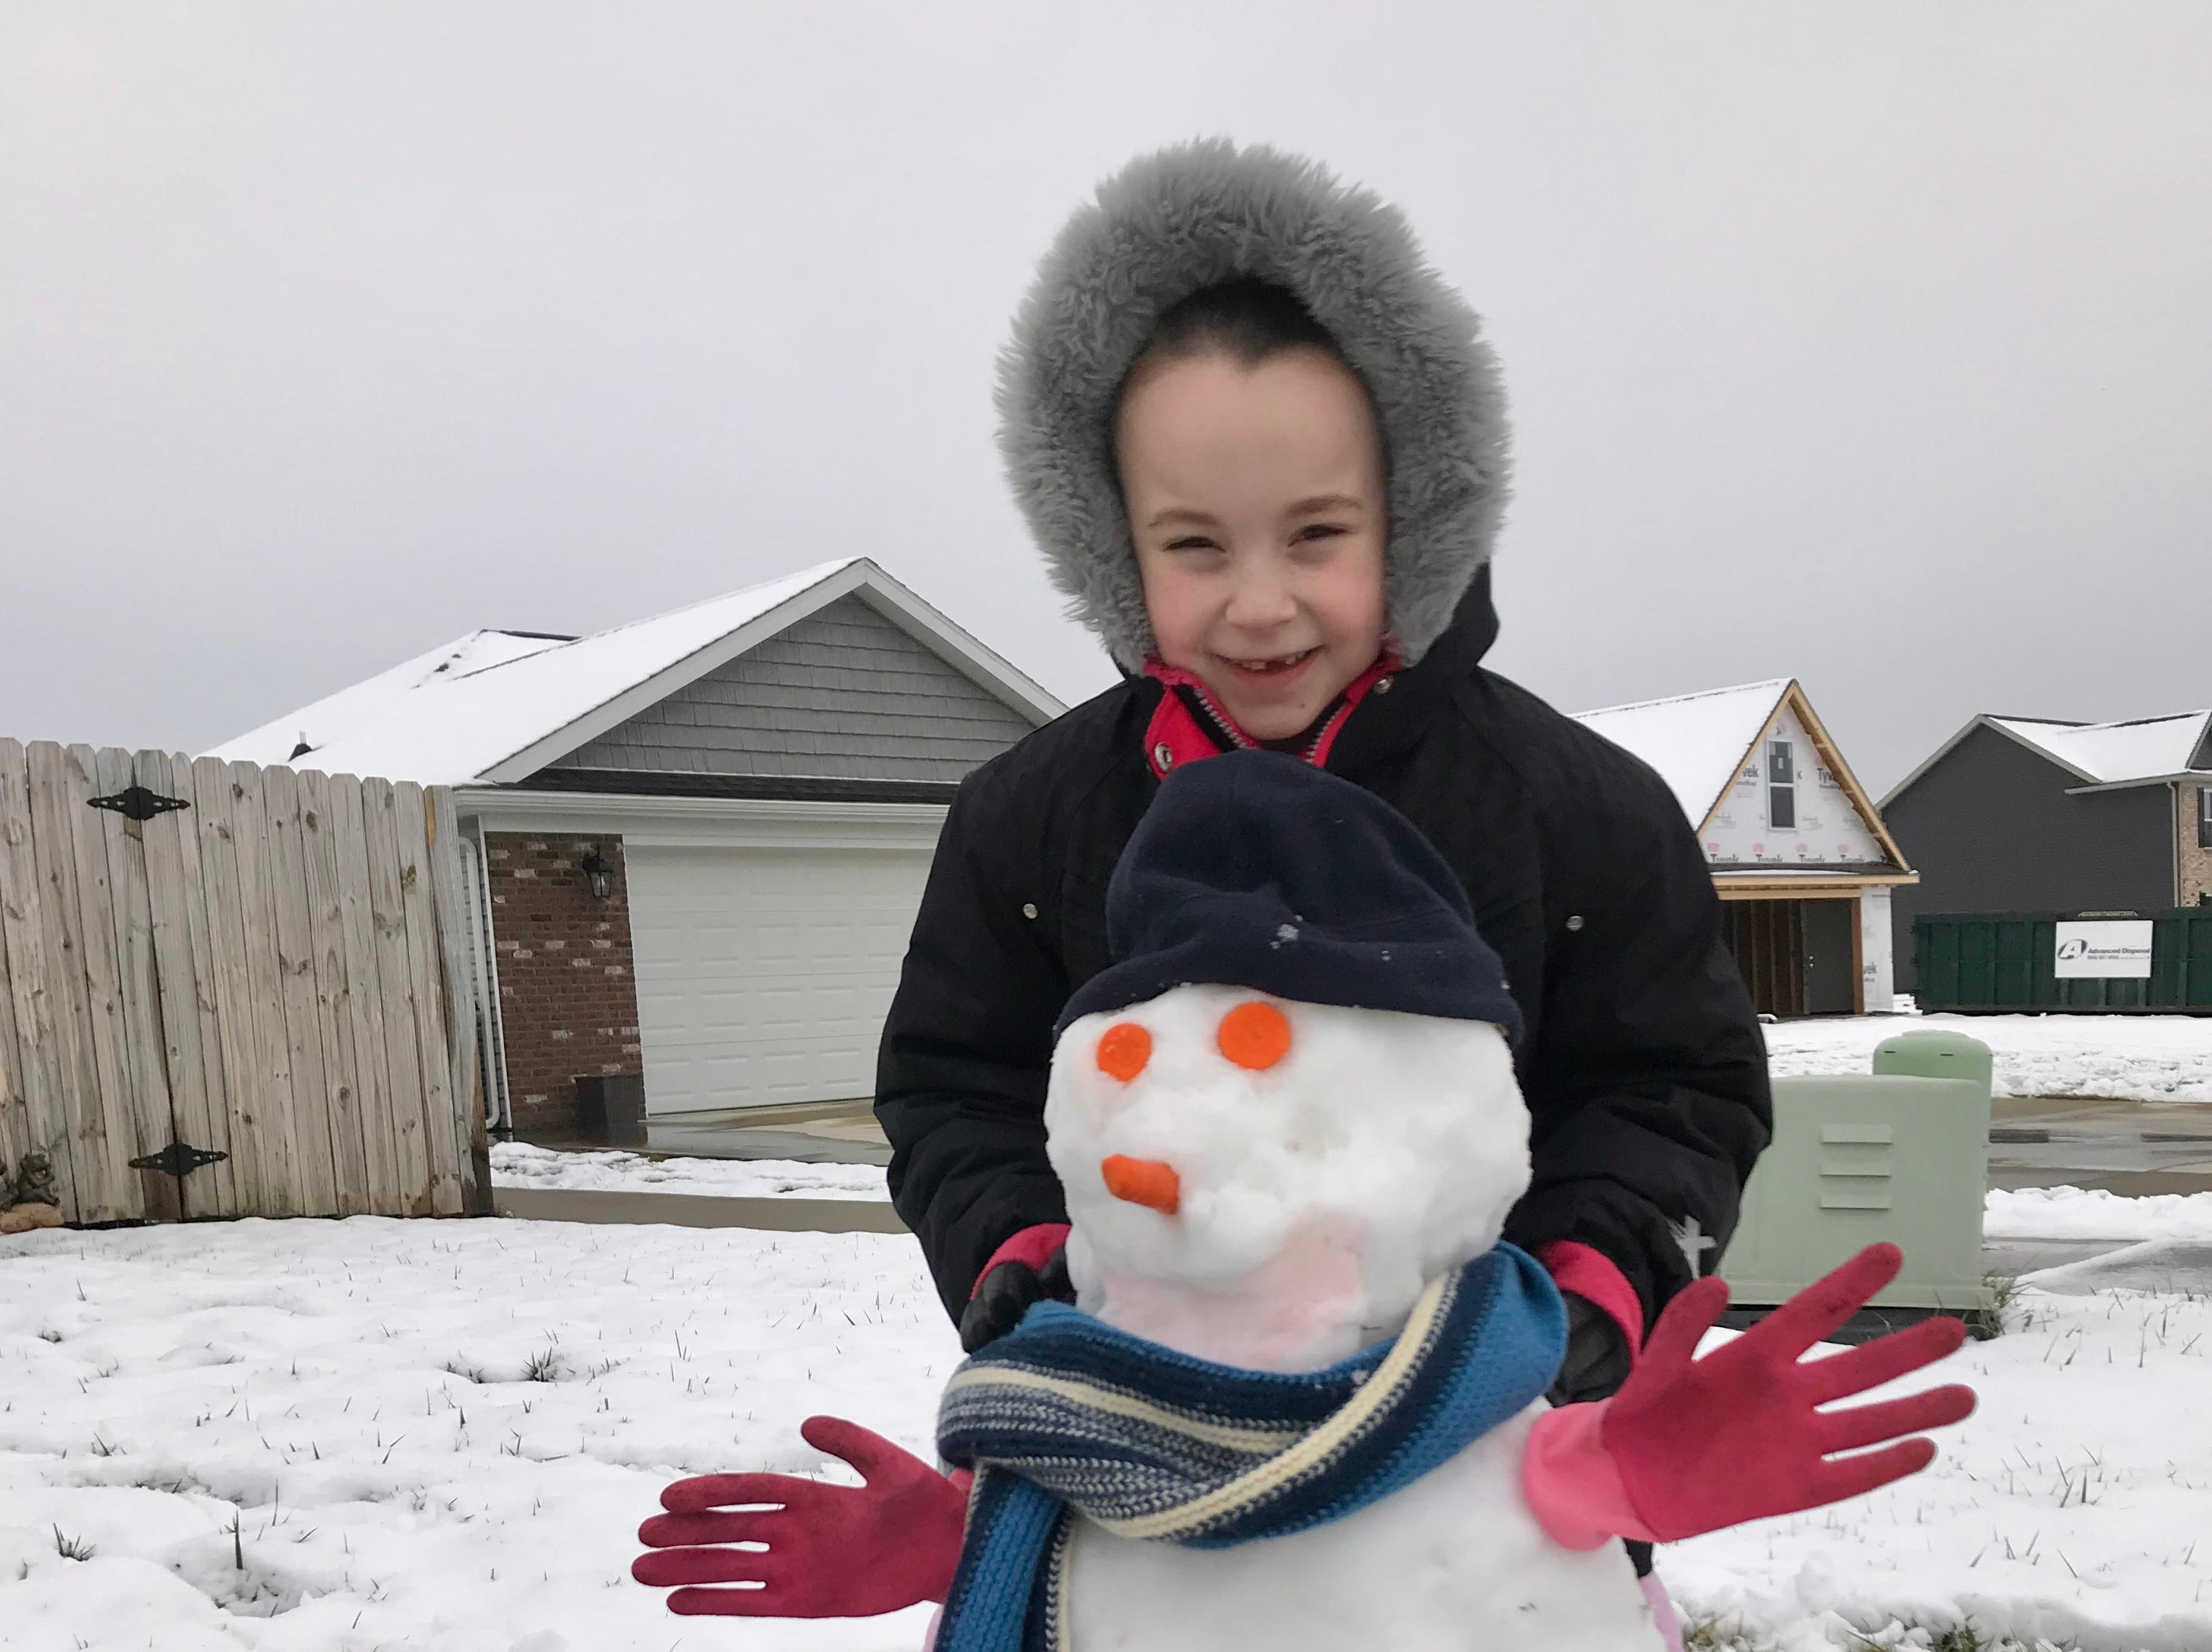 Josie Wilson poses with her snowman at her family's Evansville home.